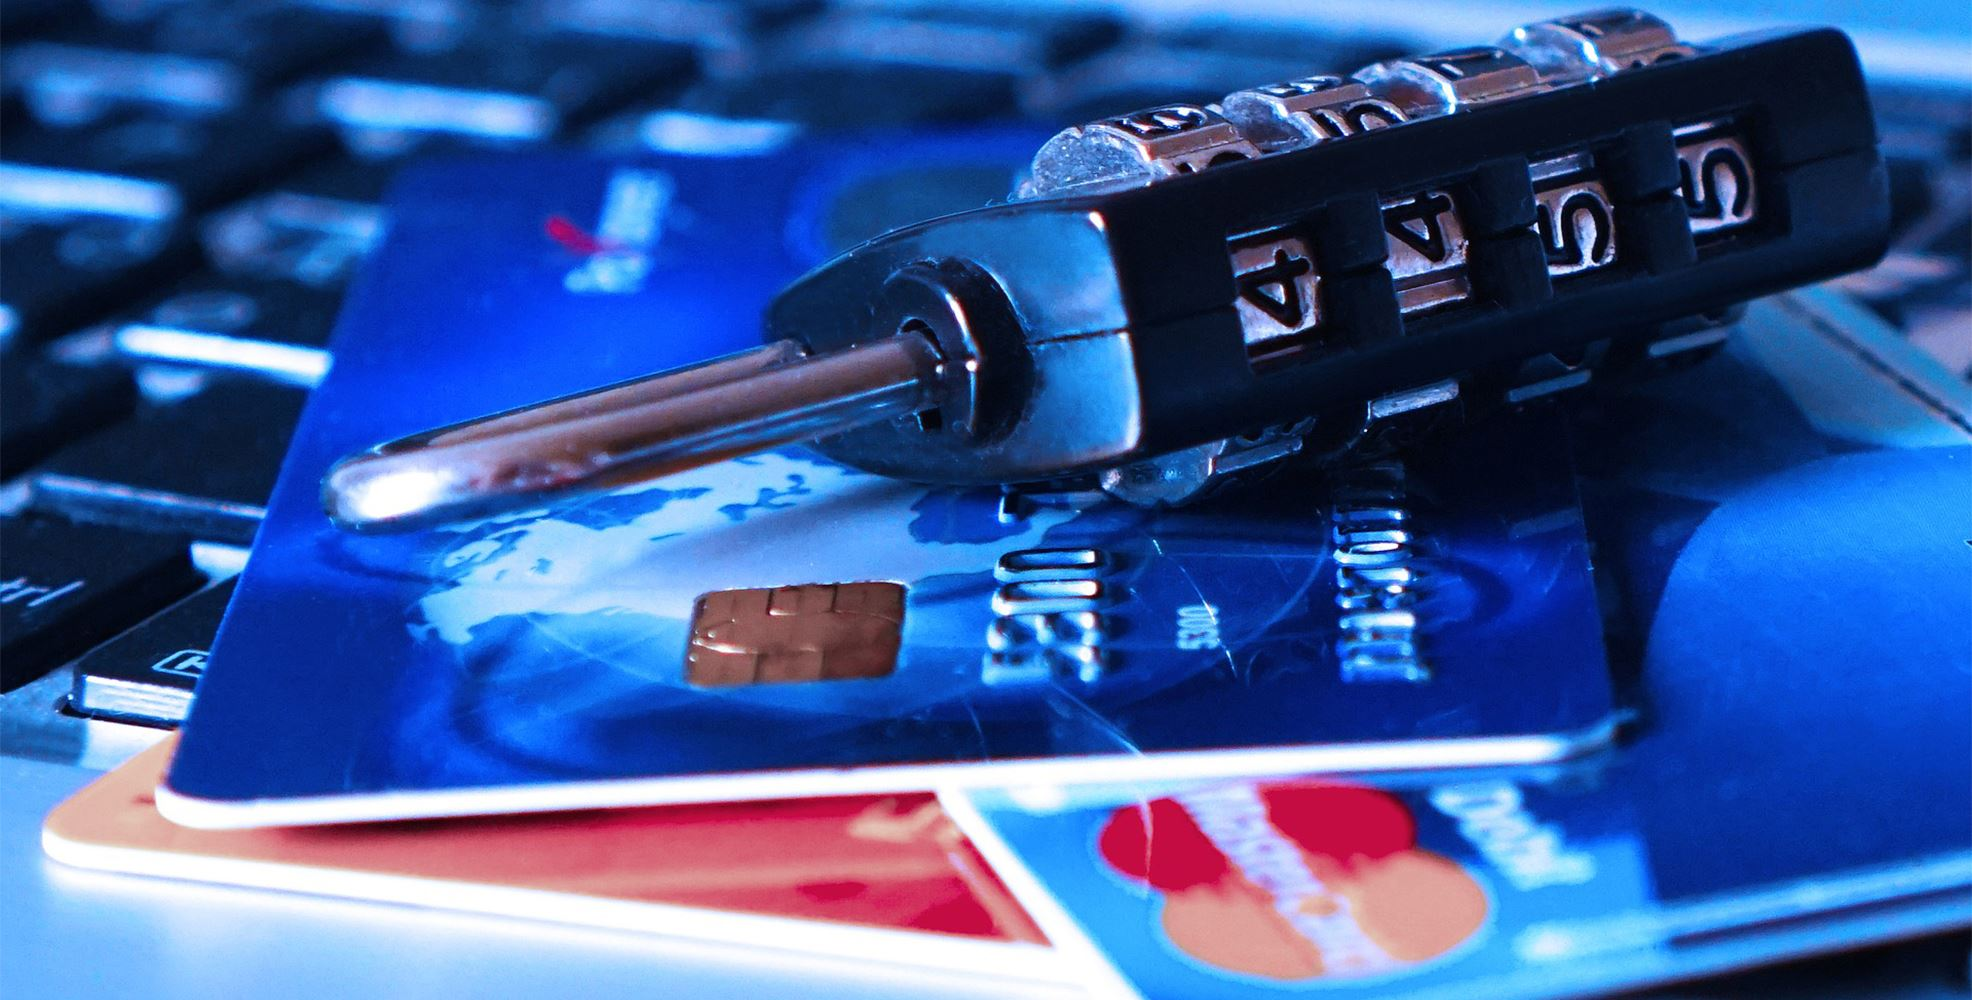 A lock sits on credit cards